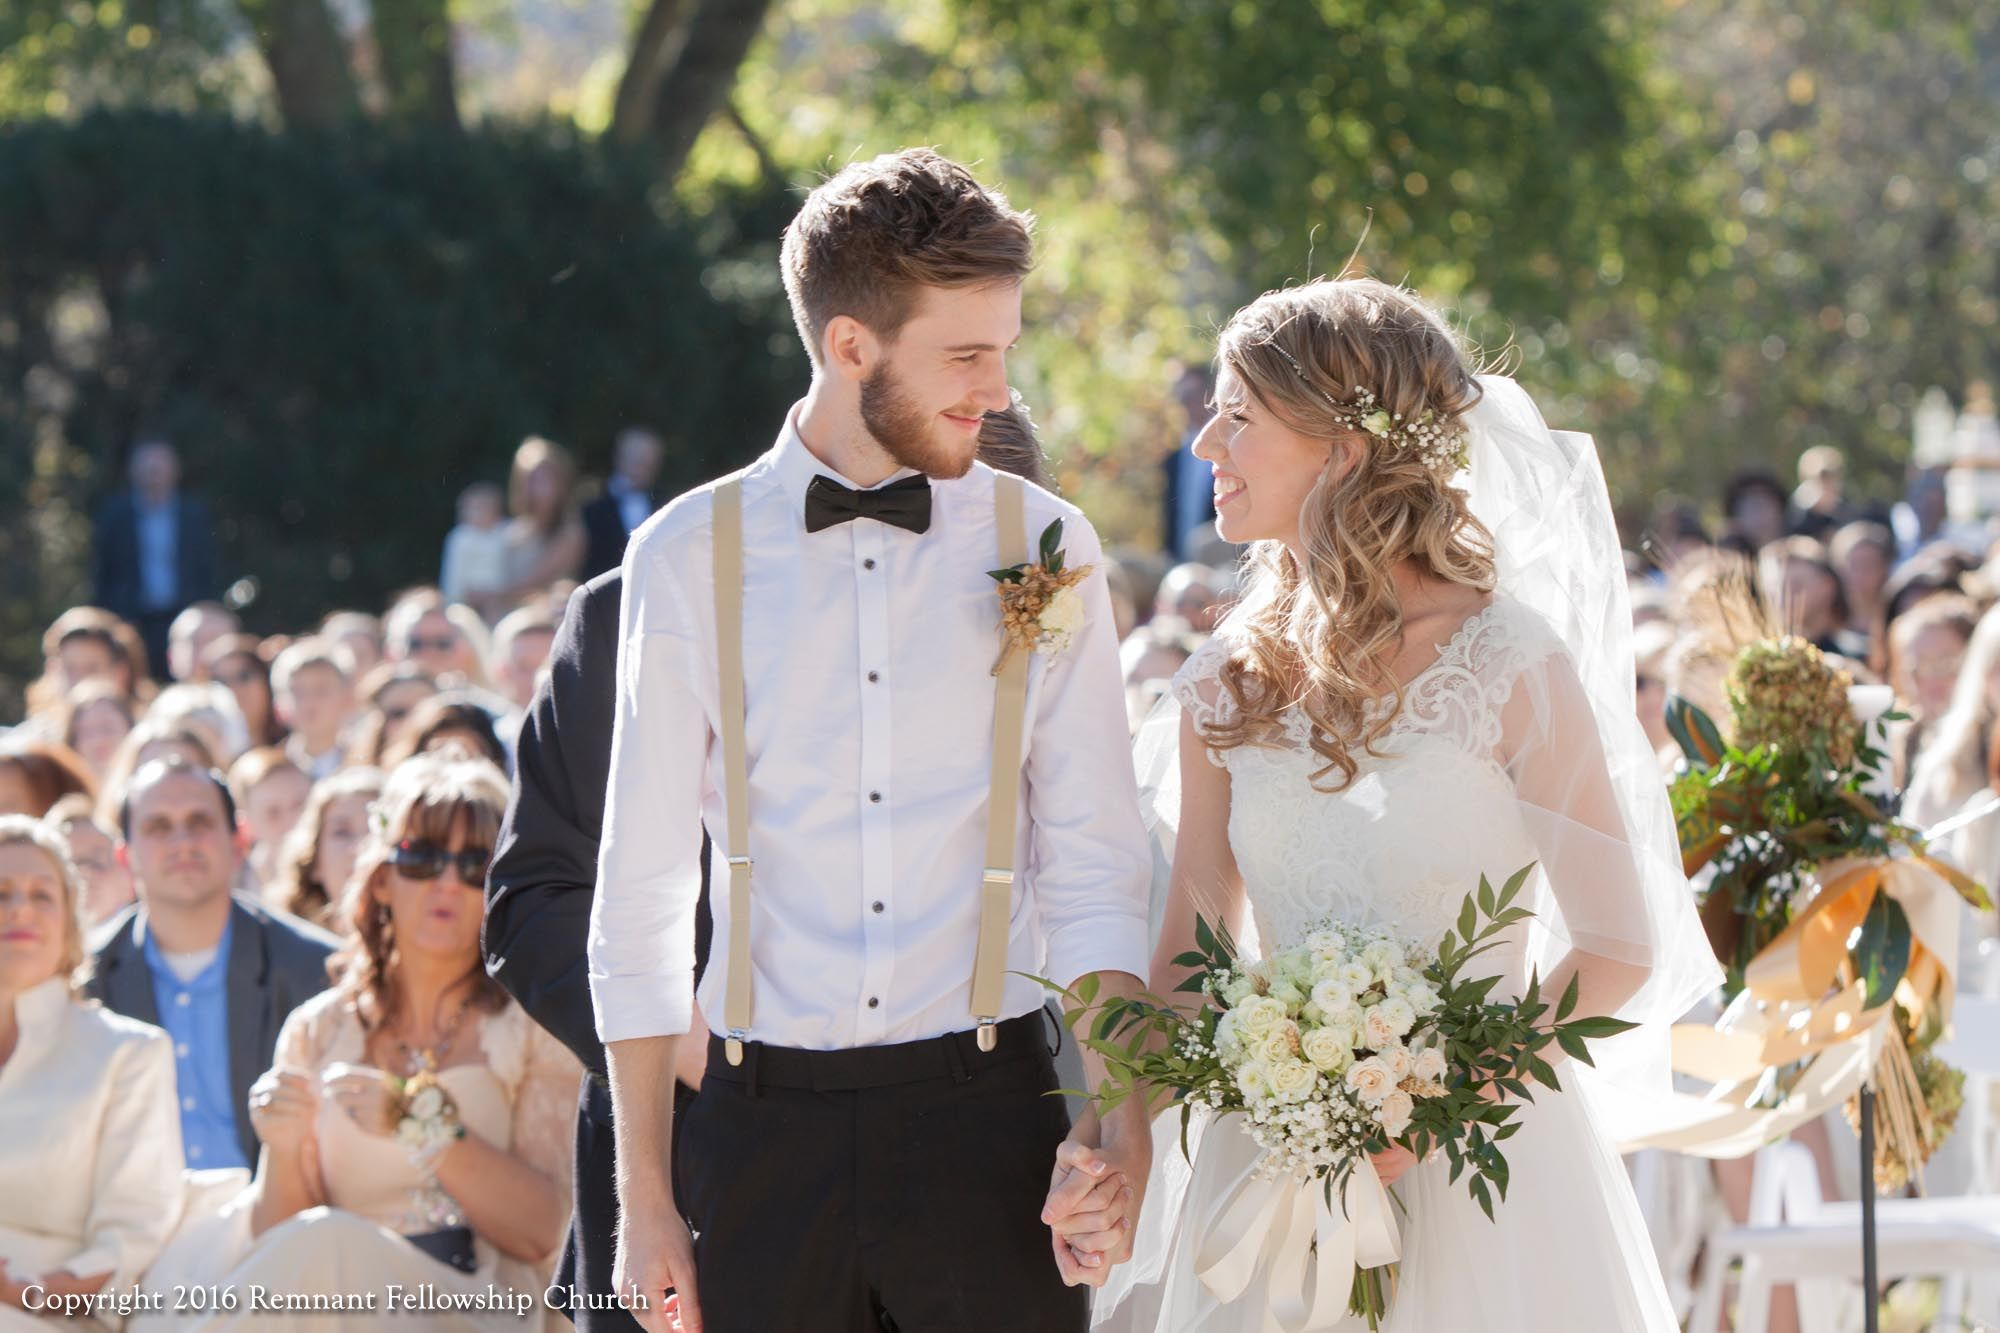 Fall outdoor wedding dresses  MaginnisLangsdon Remnant Fellowship Covenant Wedding  Fall outdoor